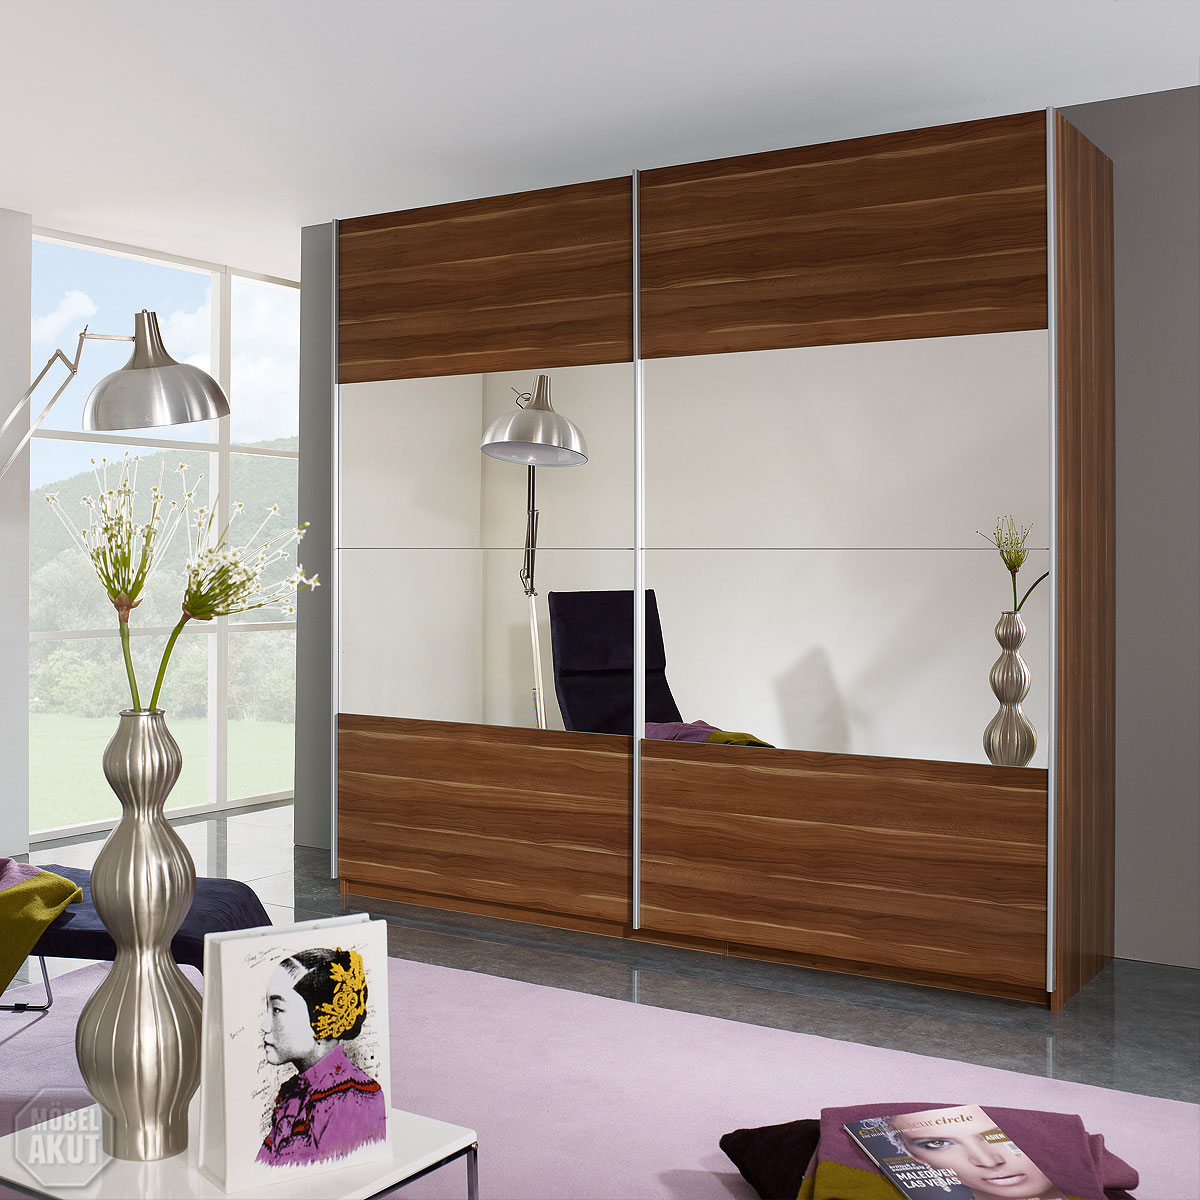 schwebet renschrank beluga base schrank kern nussbaum mit. Black Bedroom Furniture Sets. Home Design Ideas